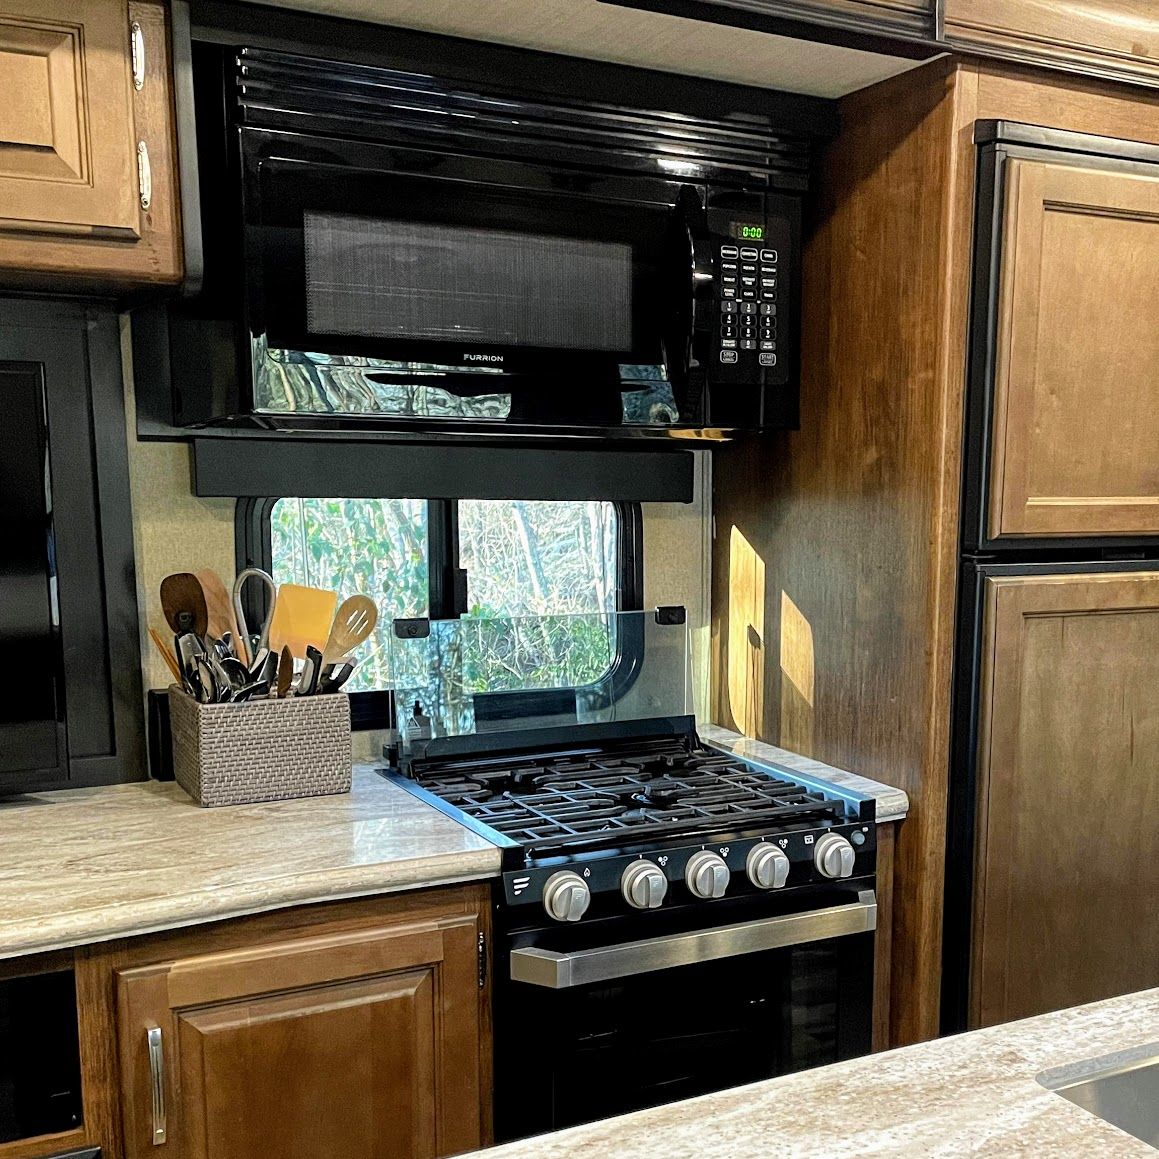 Our Five Favorite RV Kitchen Appliances